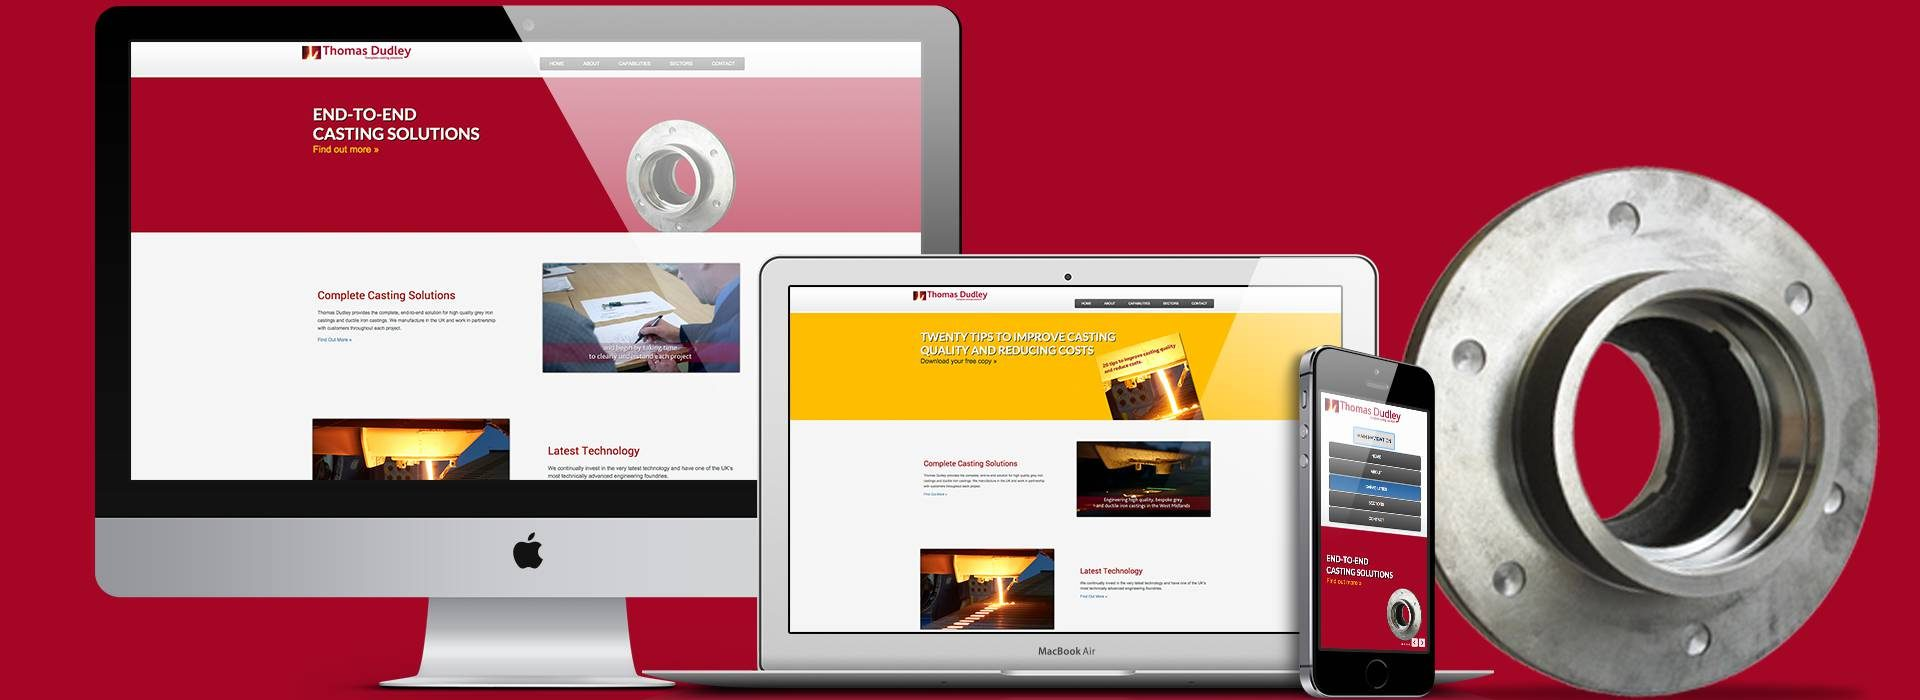 New website from Lesniak Swann increases traffic to Thomas Dudley Casting website by 80%